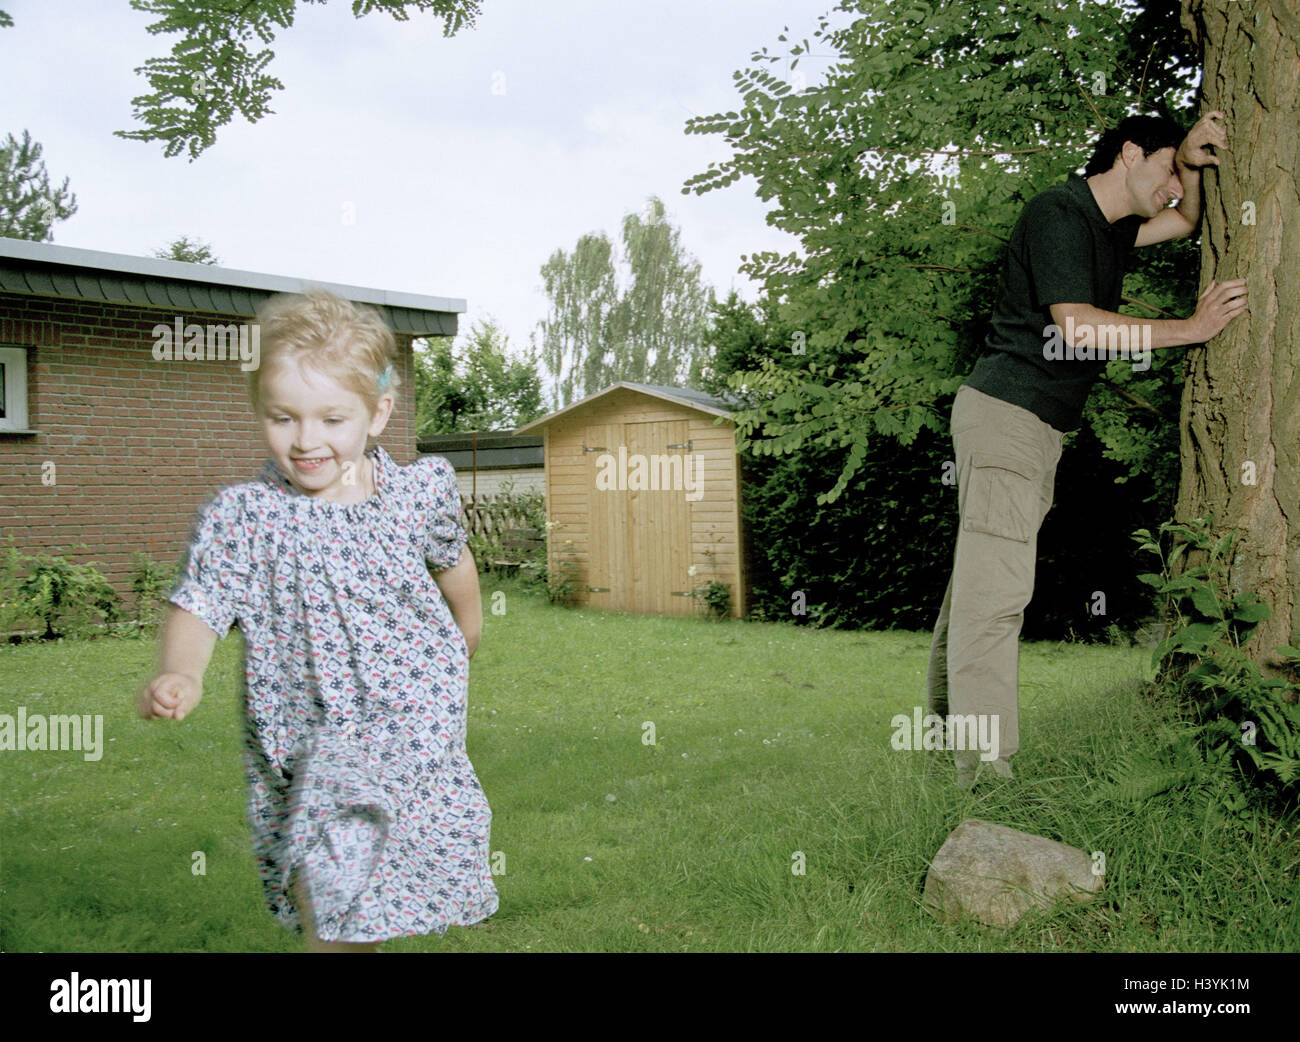 Garden, father, subsidiary, hide-and-seek, man, parent, 30-40 years, parent, single parent, single, tree, lean, - Stock Image